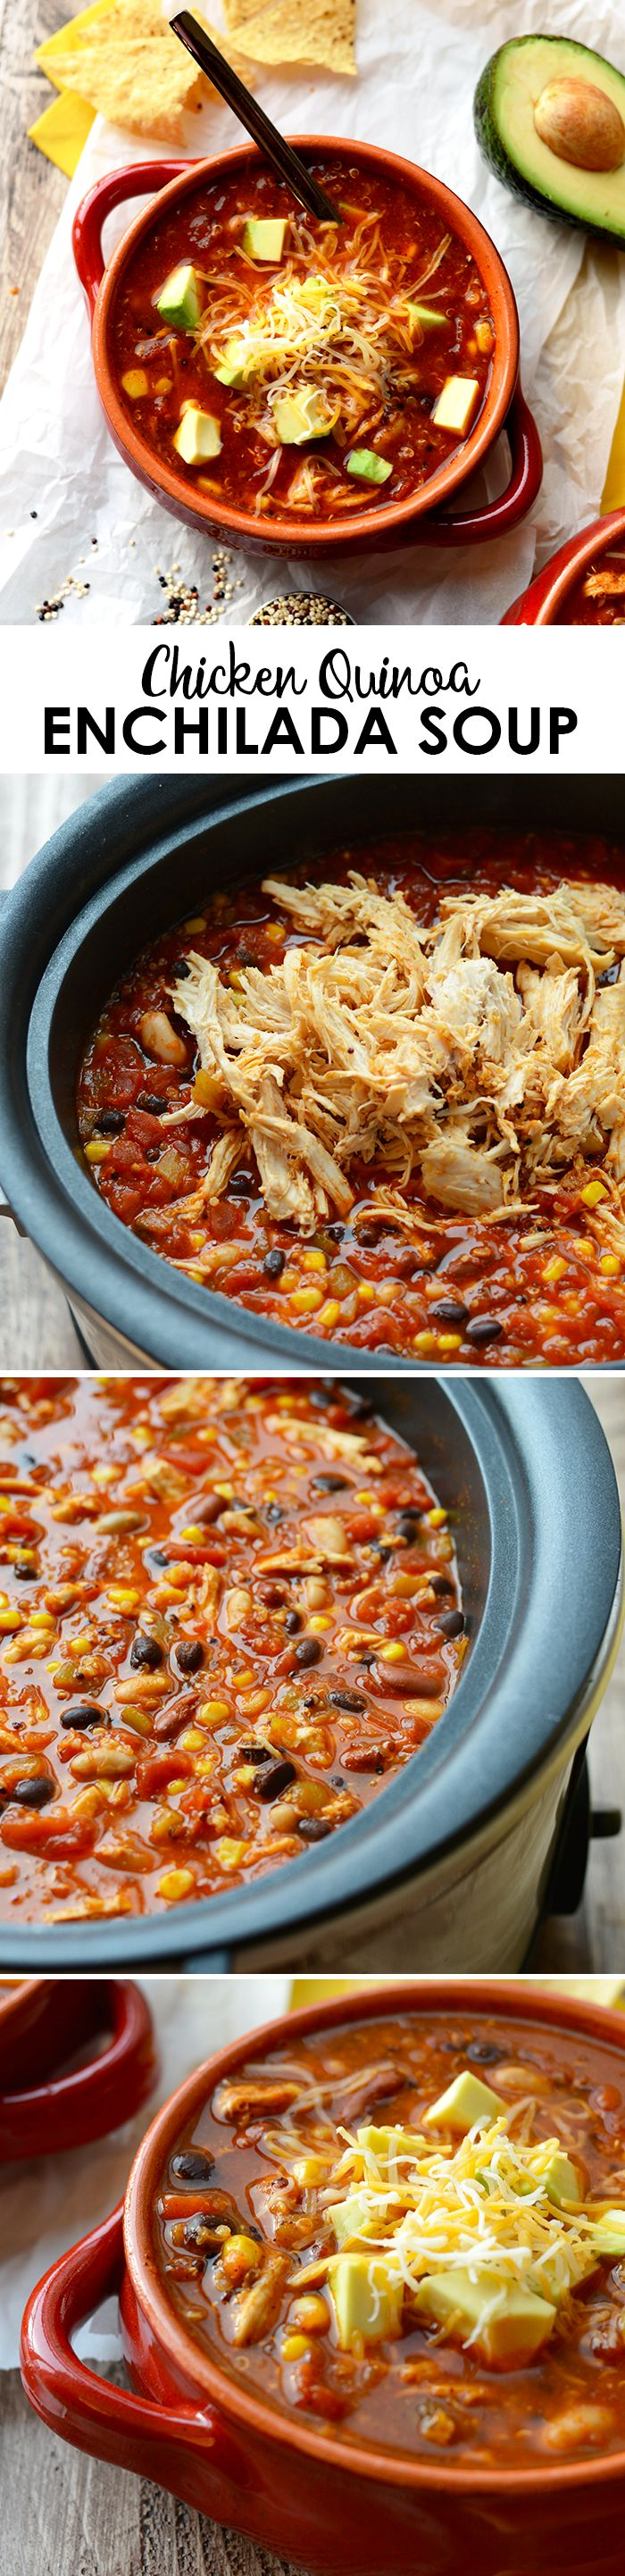 Whip out that crock-pot and pile in all of your favorite ingredients to make this stupid-easy Crock-Pot Chicken Quinoa Enchilada Soup!